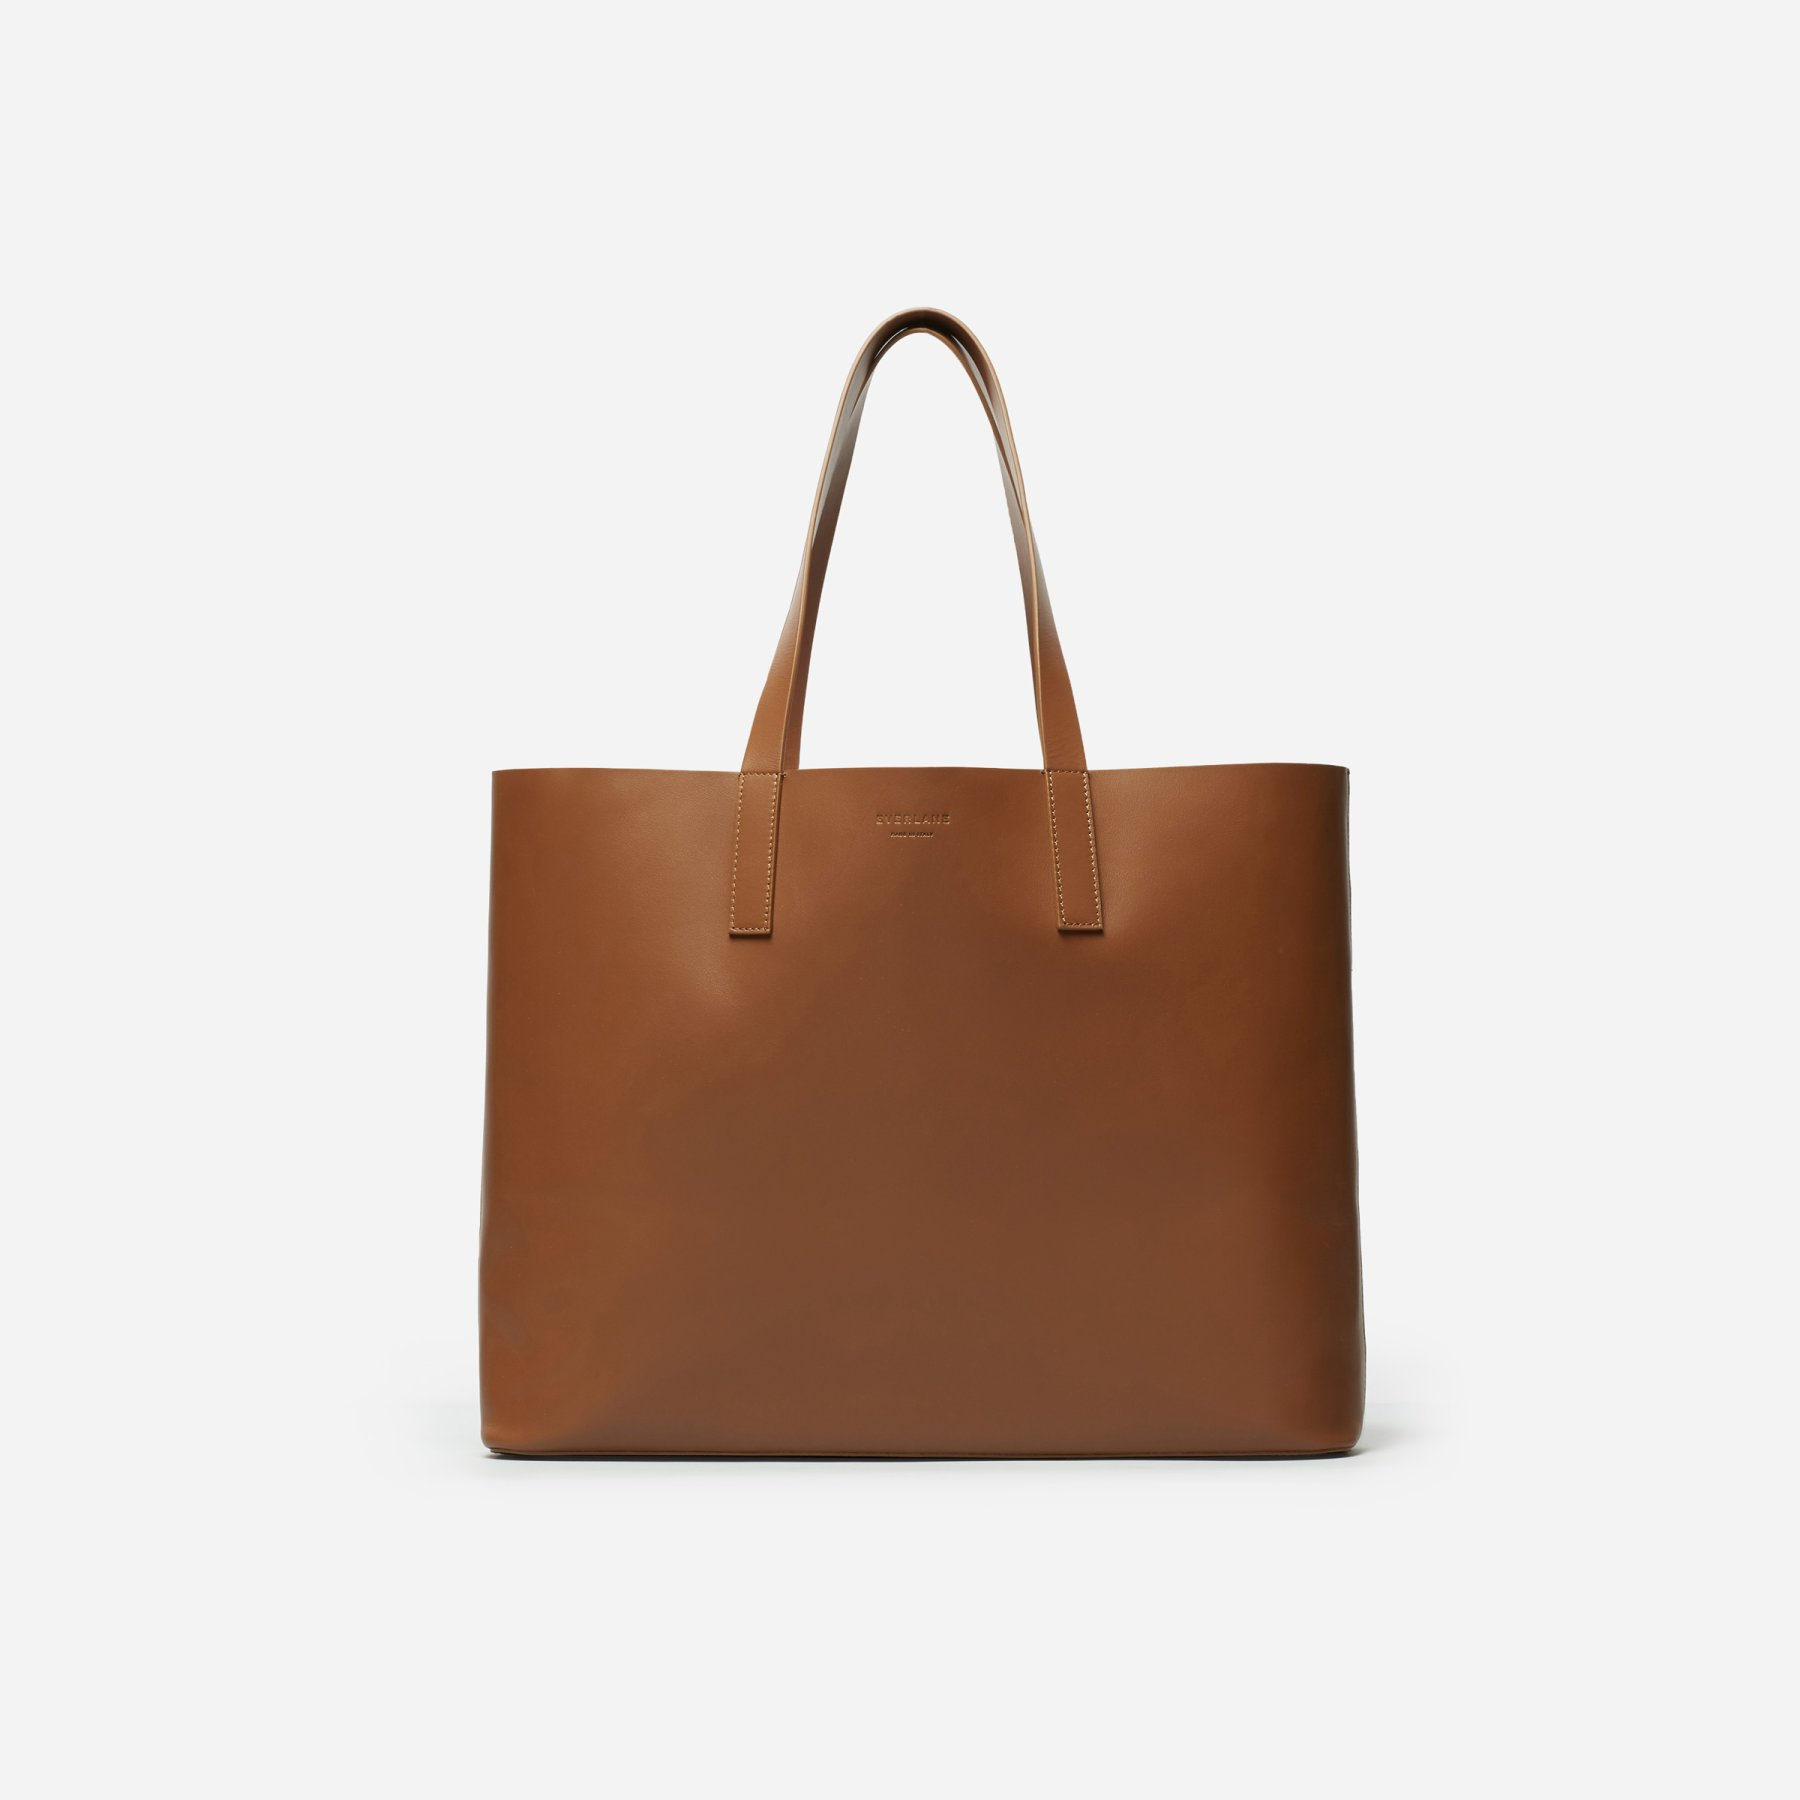 everlane review 6 best staples womens day market tote